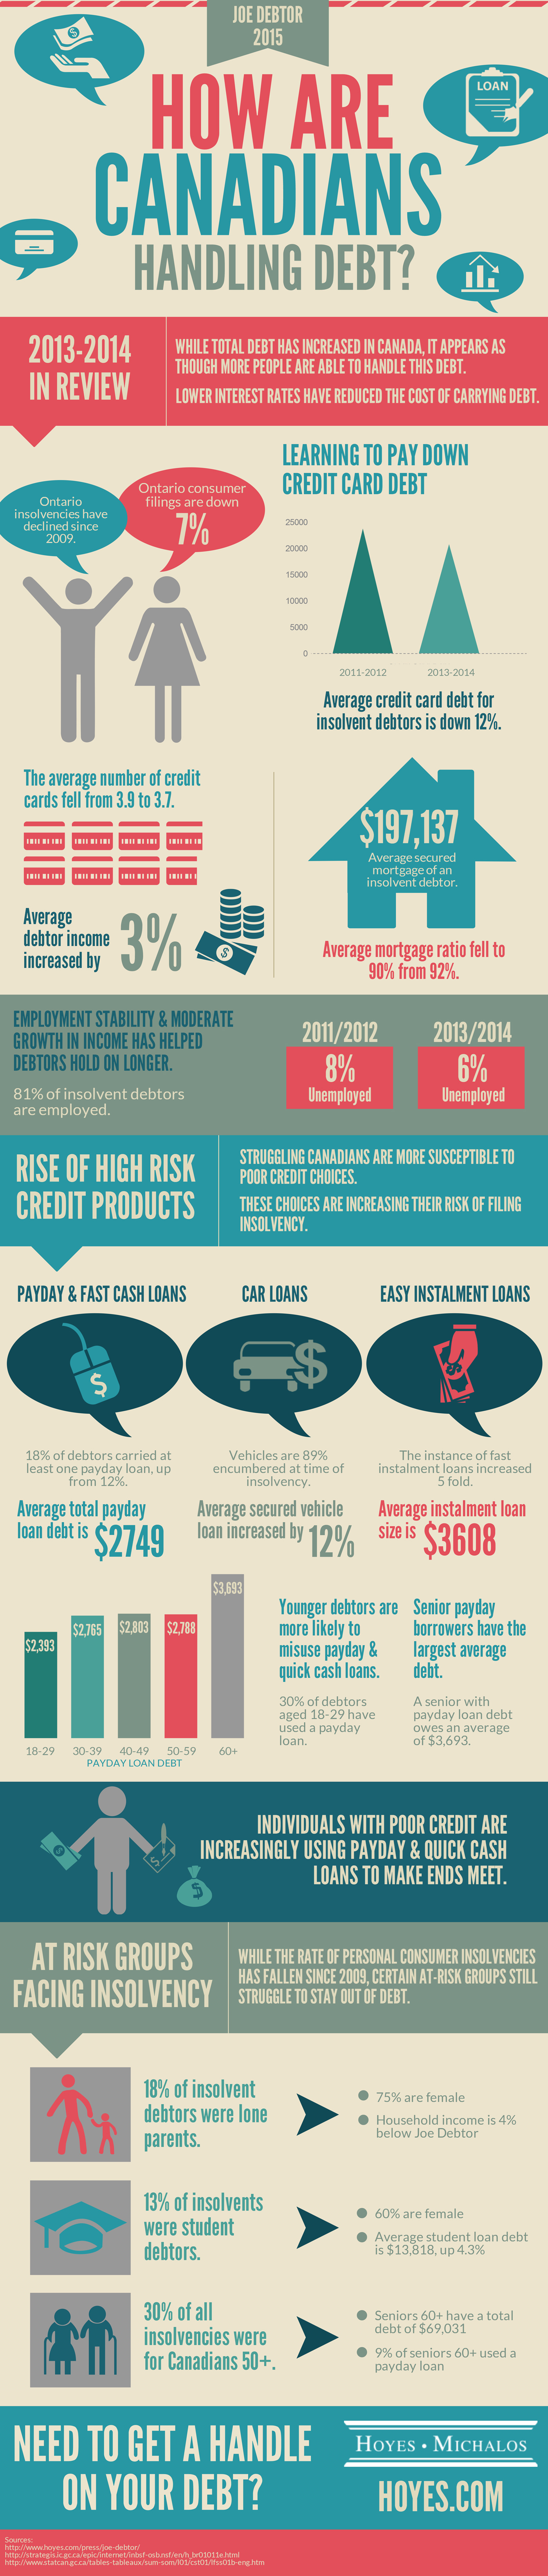 How are Canadians Handling Debt Infographic